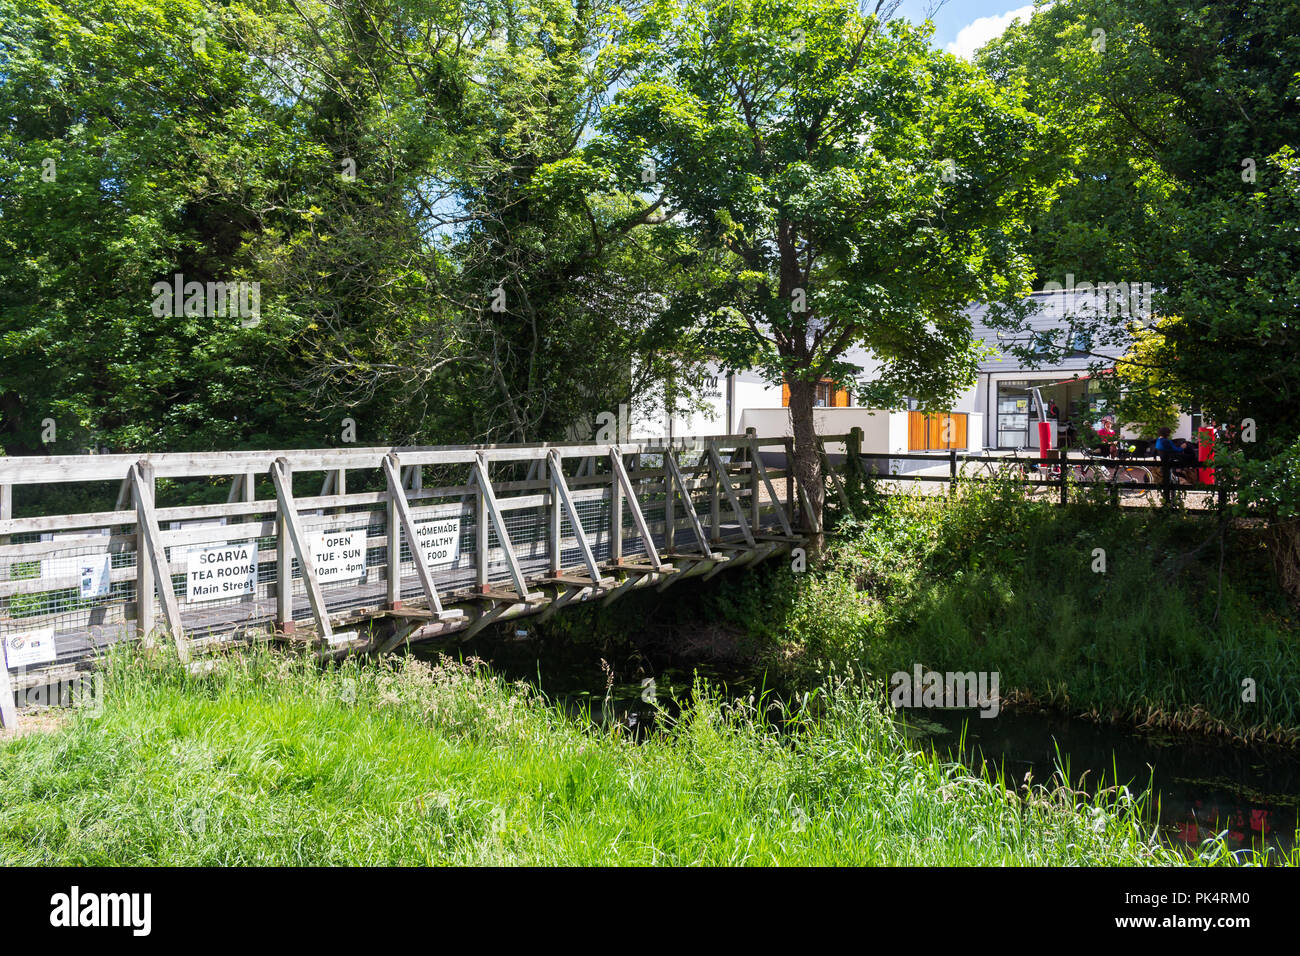 Wooden bridge across a disused canal linking the towpath to Scarva Tea Rooms and Scarva Visitor Centre. Scarva, County Down, N.Ireland. - Stock Image